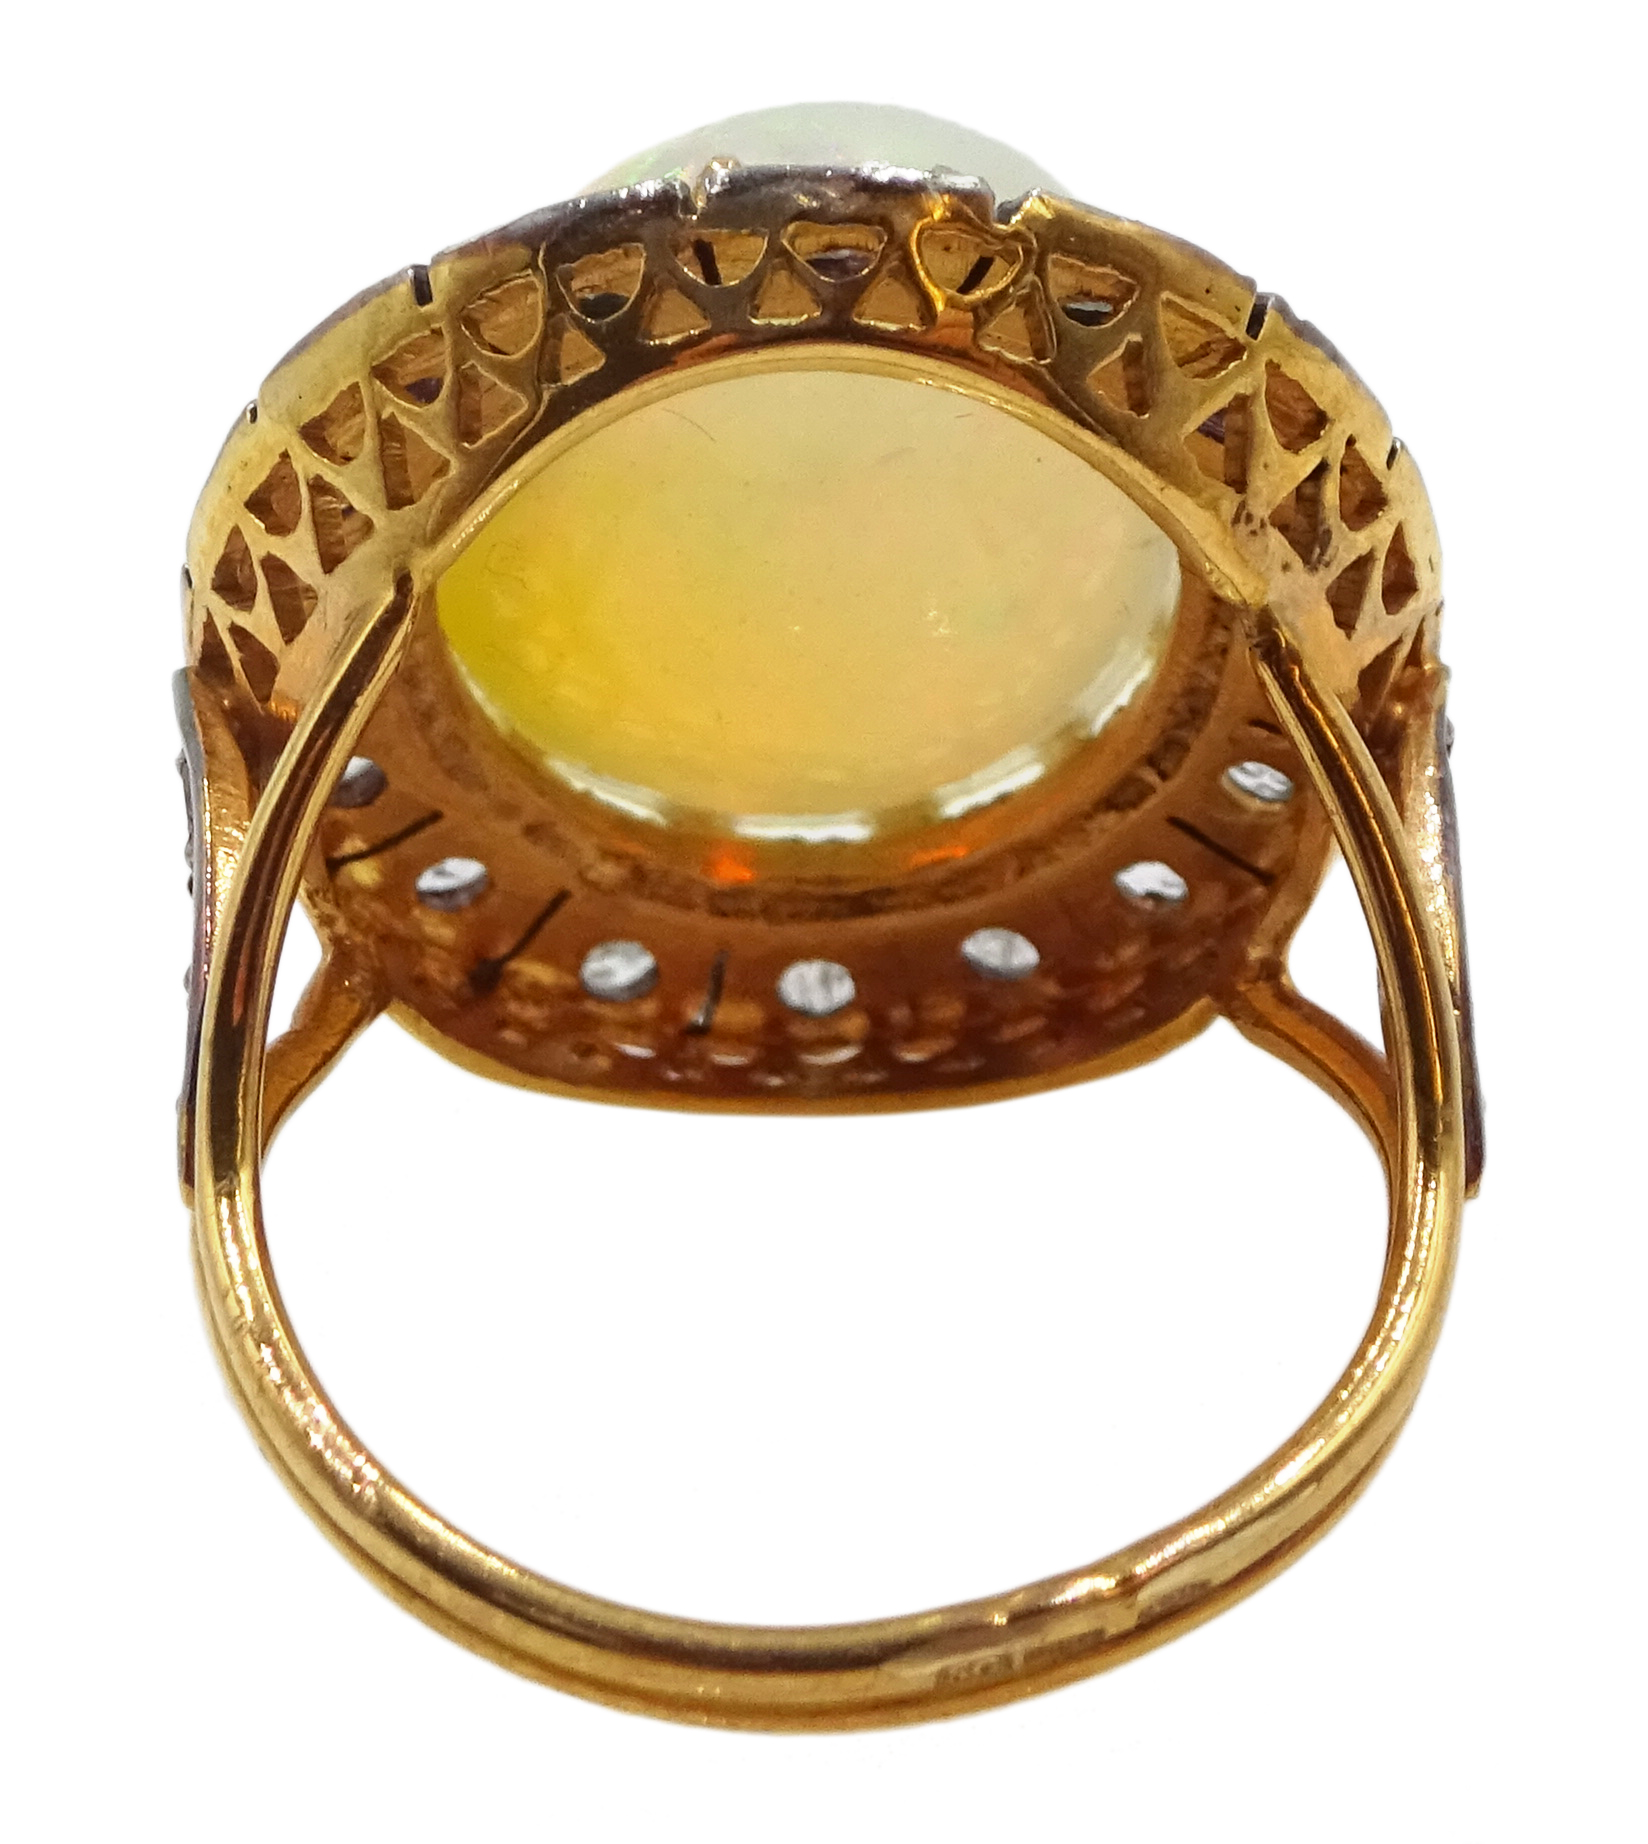 14ct gold and silver cabochon Ethiopian opal and rose cit diamond ring, stamped 585 and 925 - Image 5 of 7